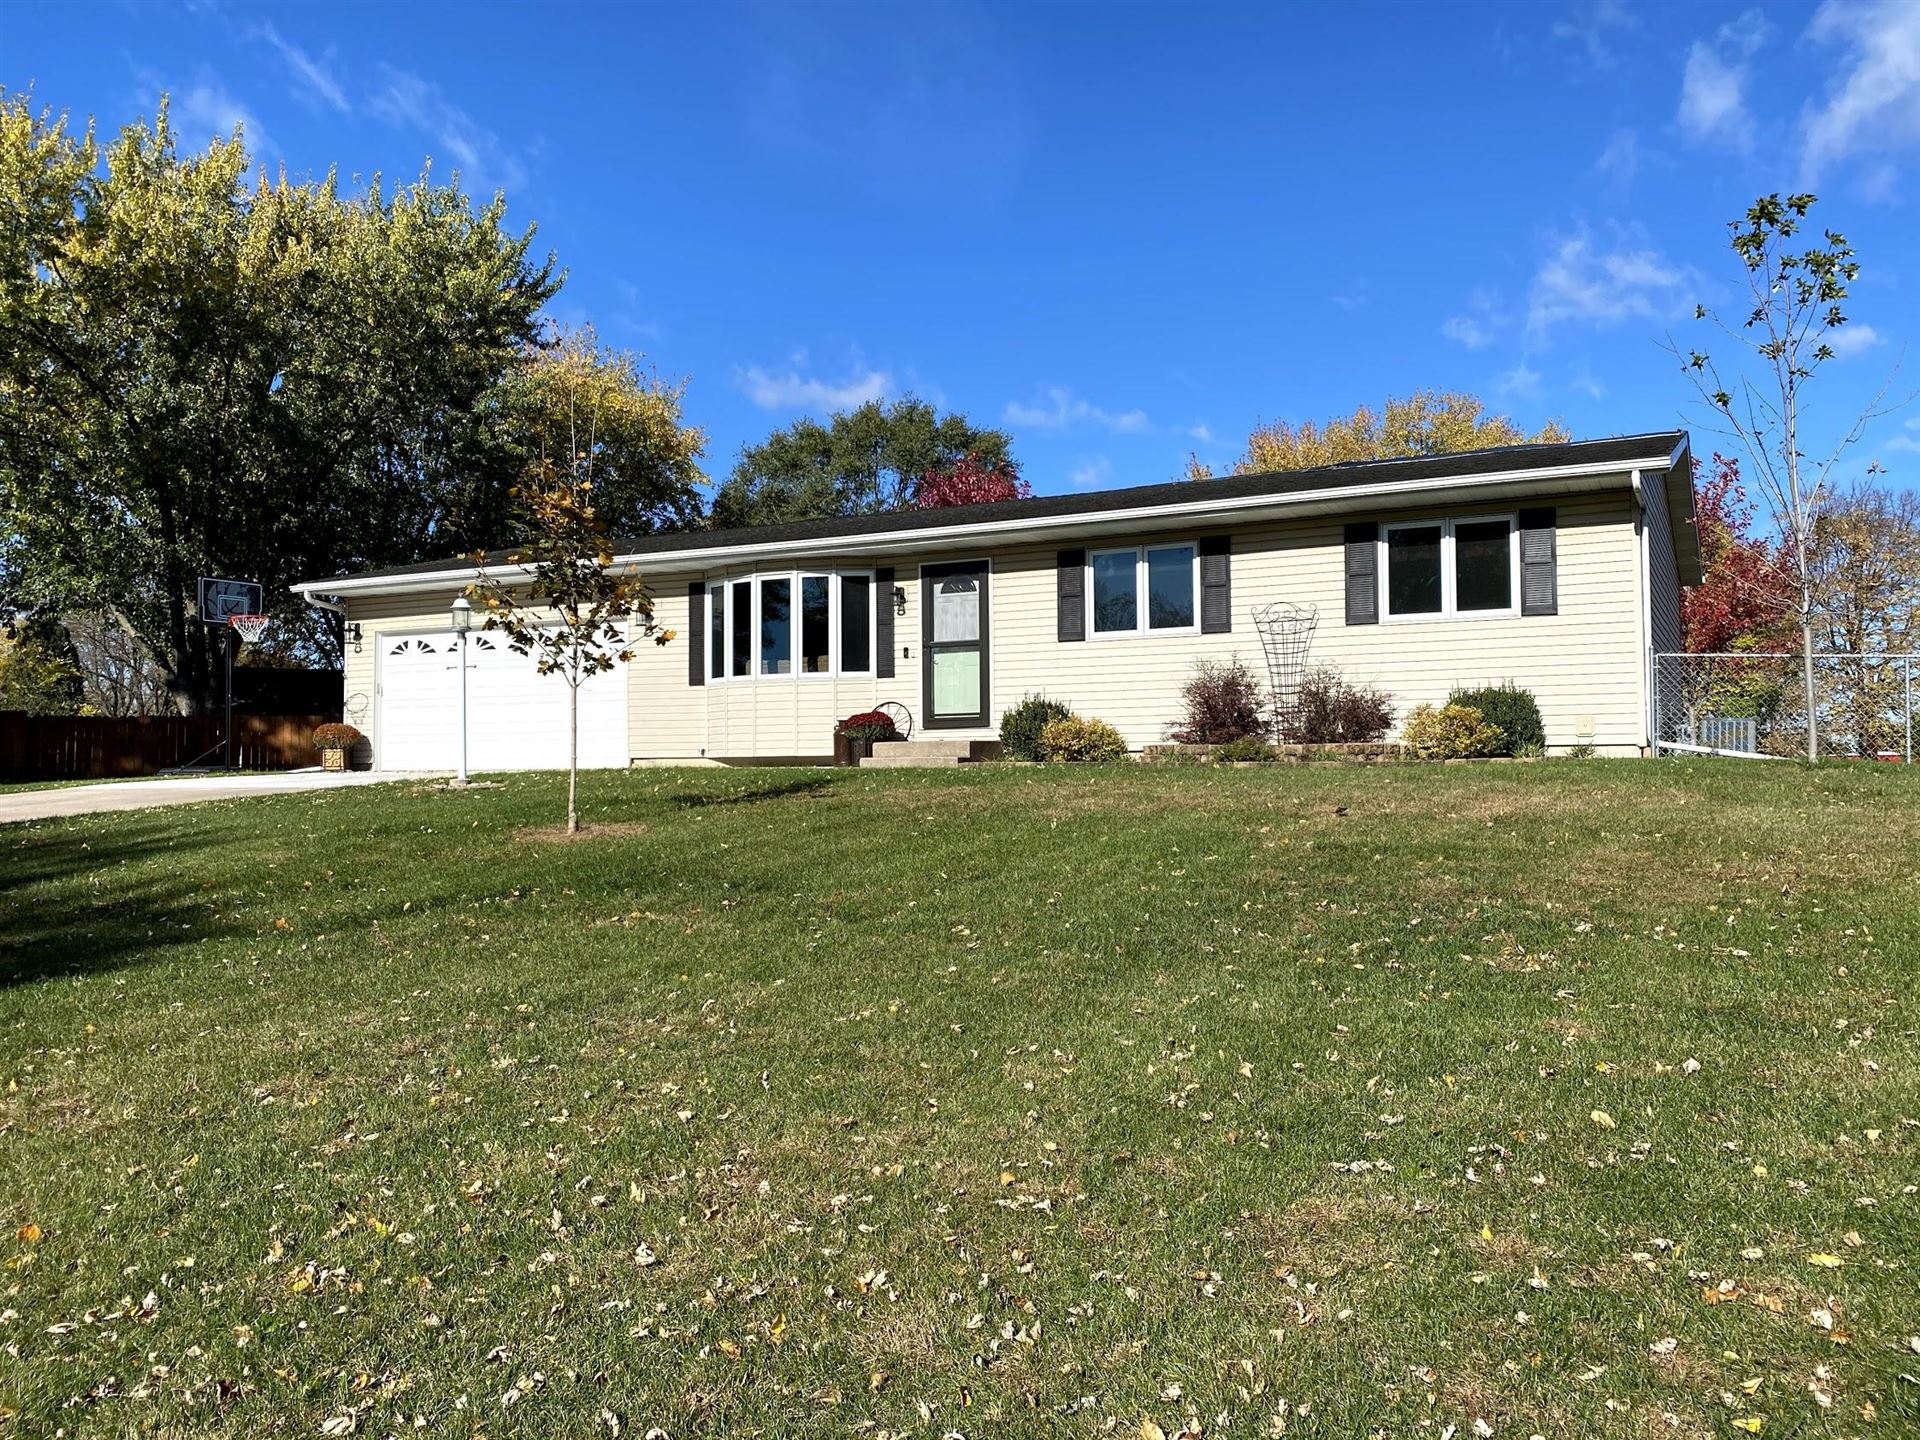 W6746 Strawberry Rd, Onalaska, WI 54650 - MLS#: 1715688